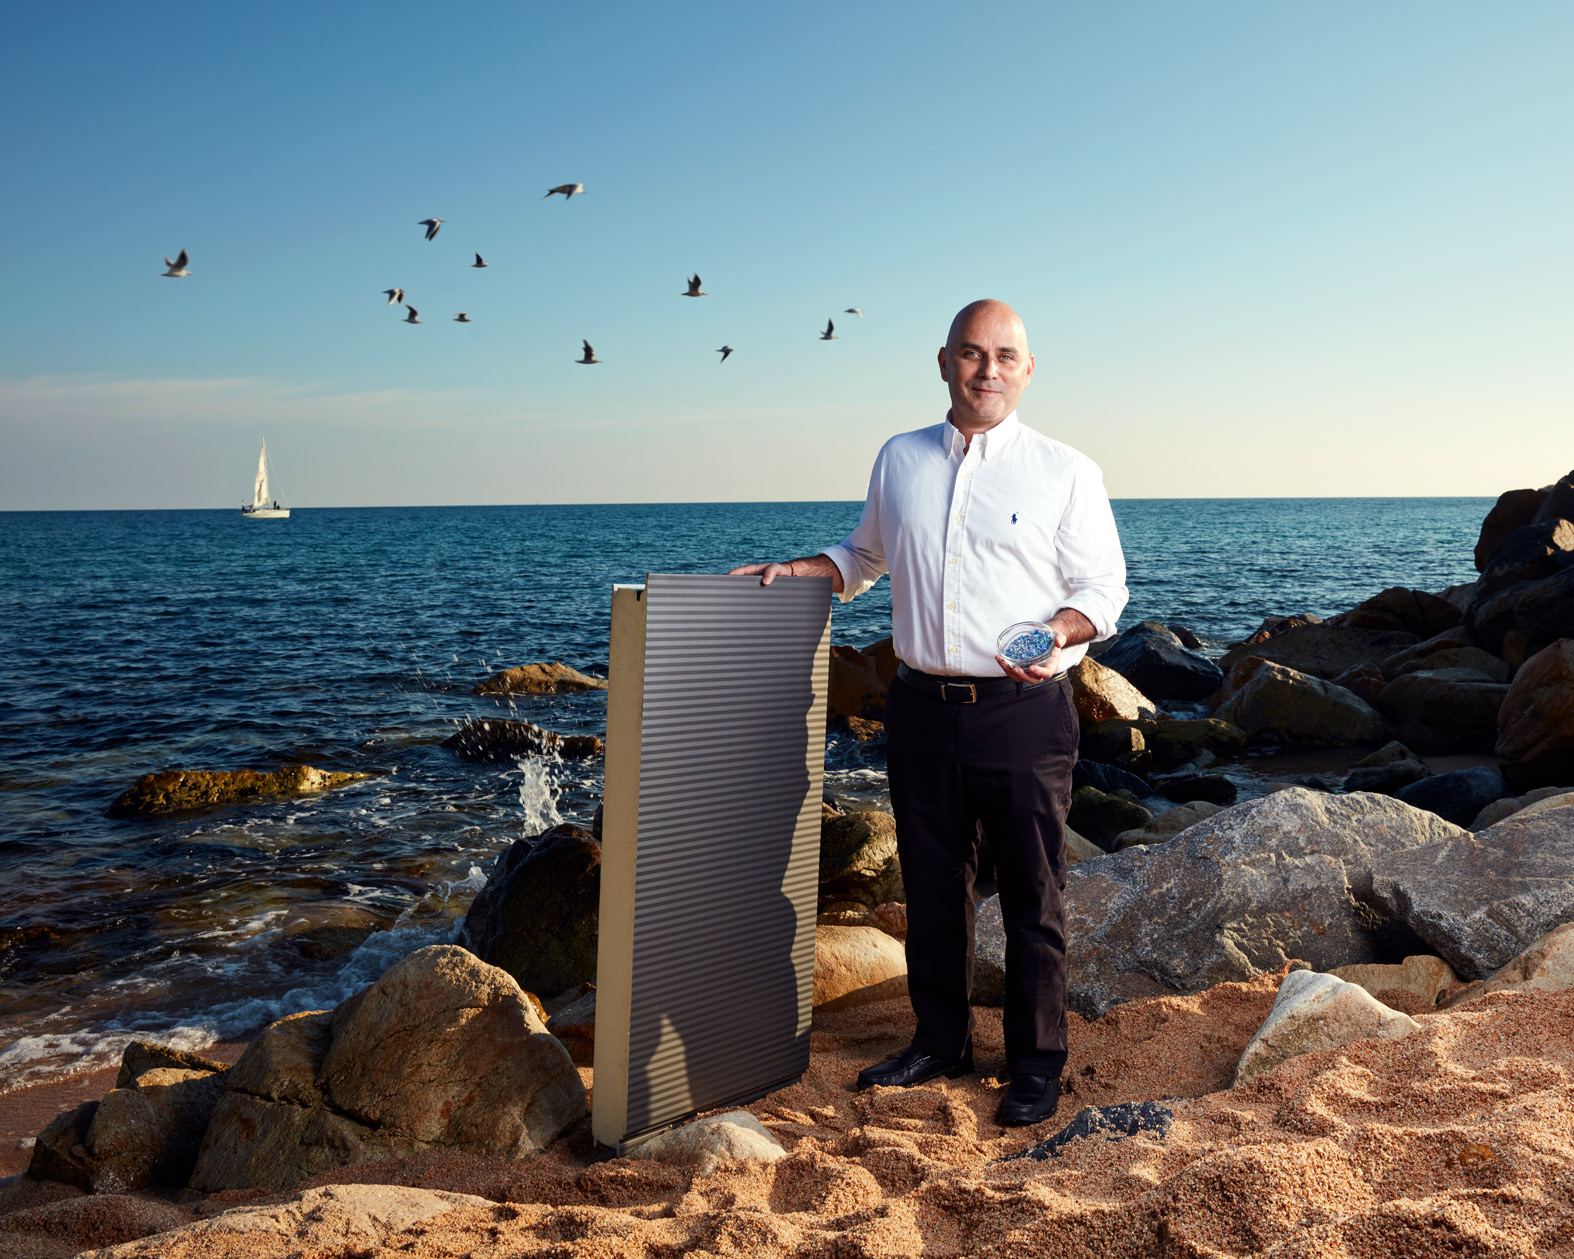 man stands on beach beside sea with insulating panel